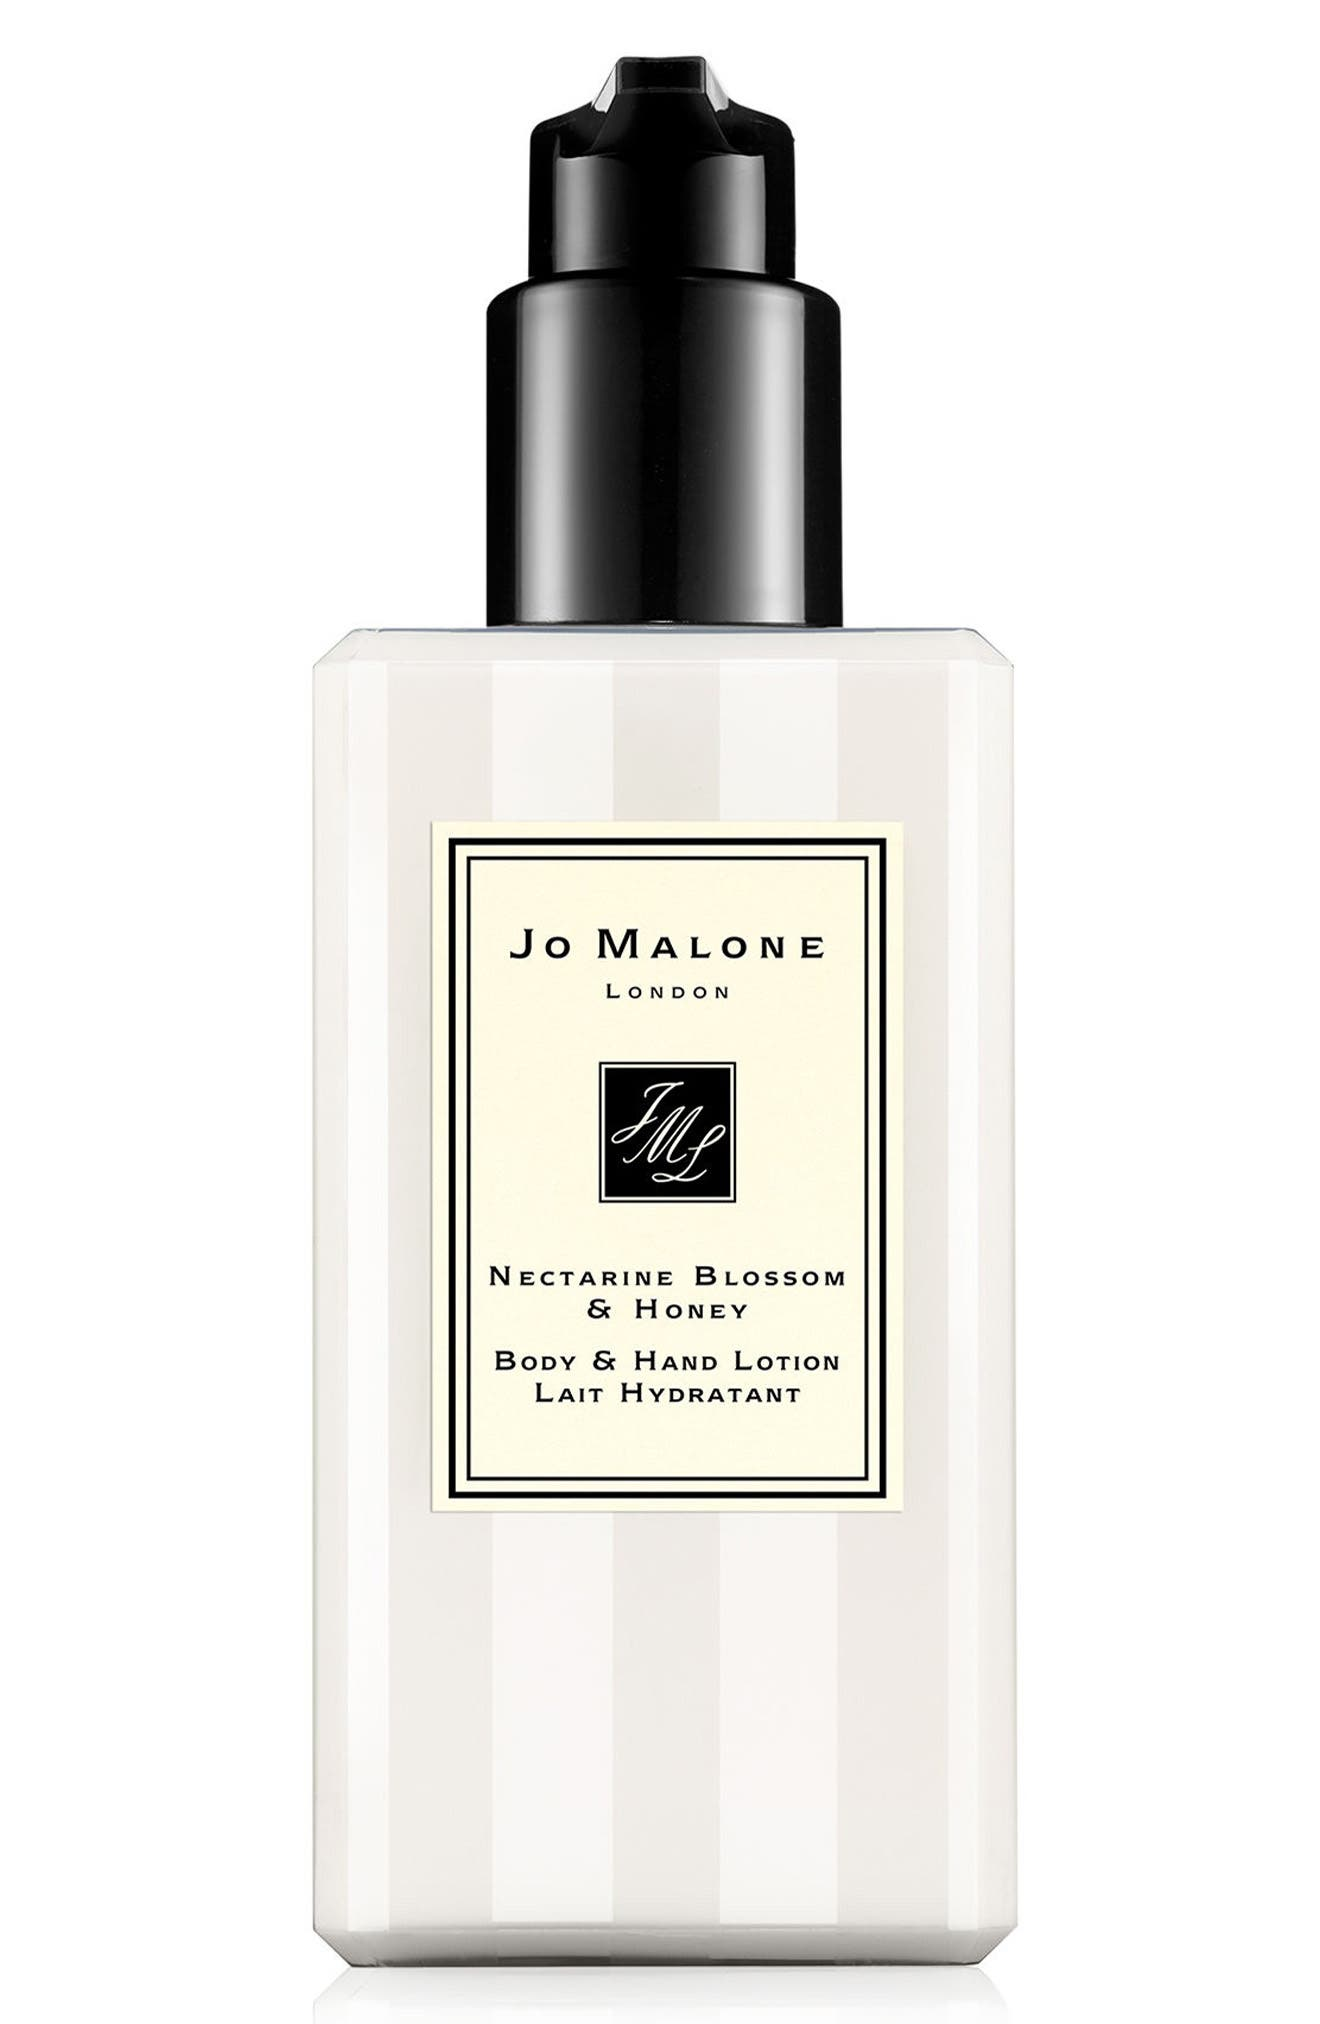 Jo Malone London™ 'Nectarine Blossom & Honey' Body & Hand Lotion